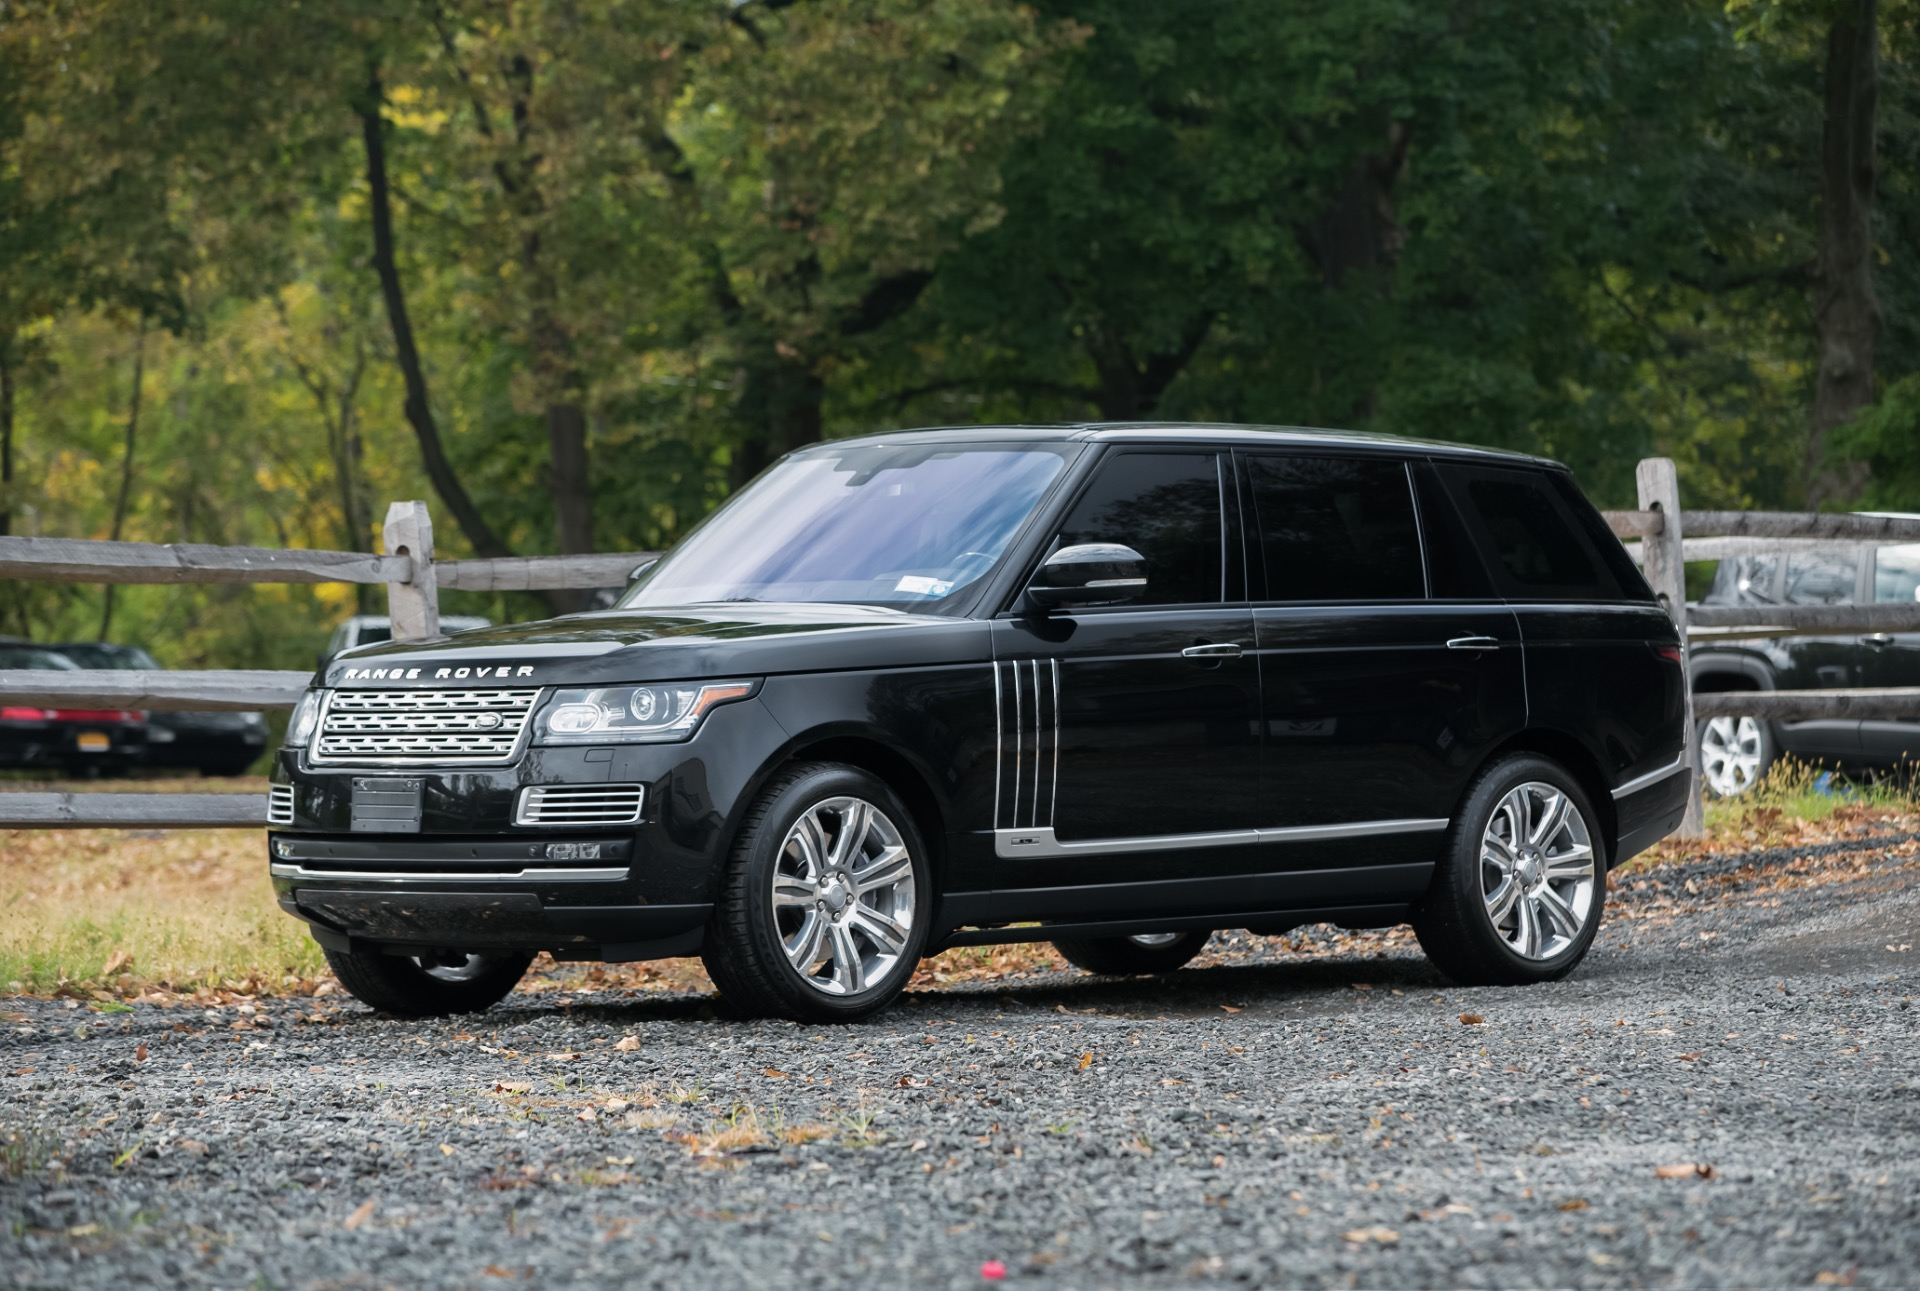 2015 land rover range rover autobiography lwb black. Black Bedroom Furniture Sets. Home Design Ideas